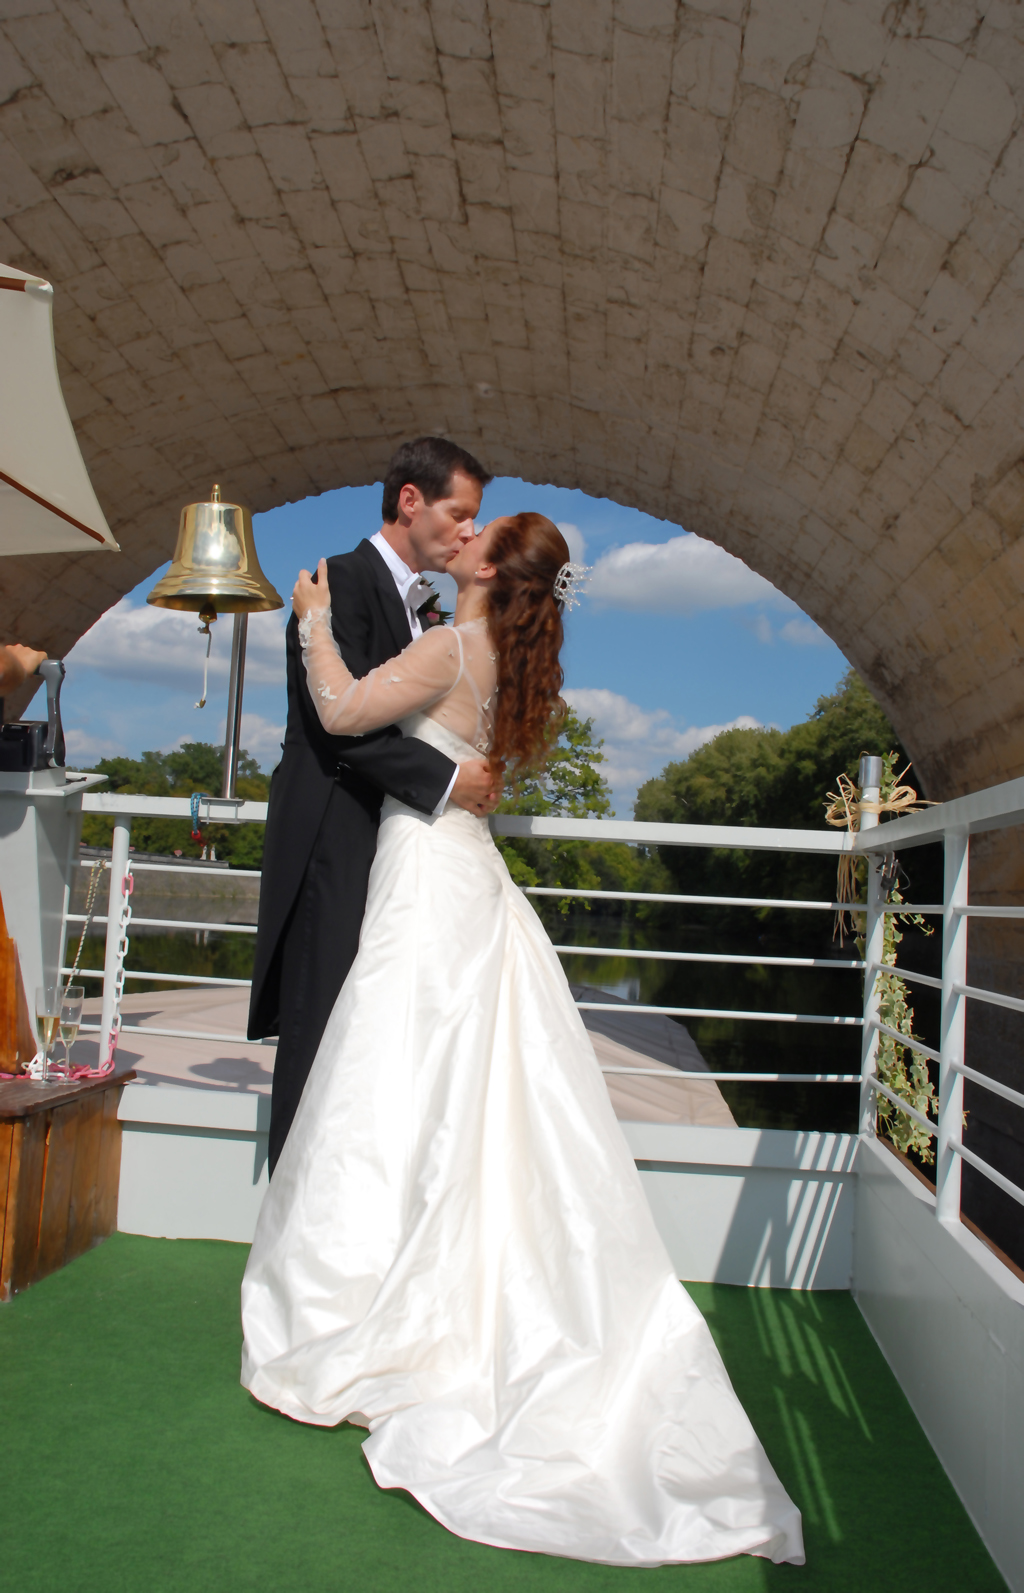 Castle-Key-Destination-Weddings-Specialist-Loire-Valley-France